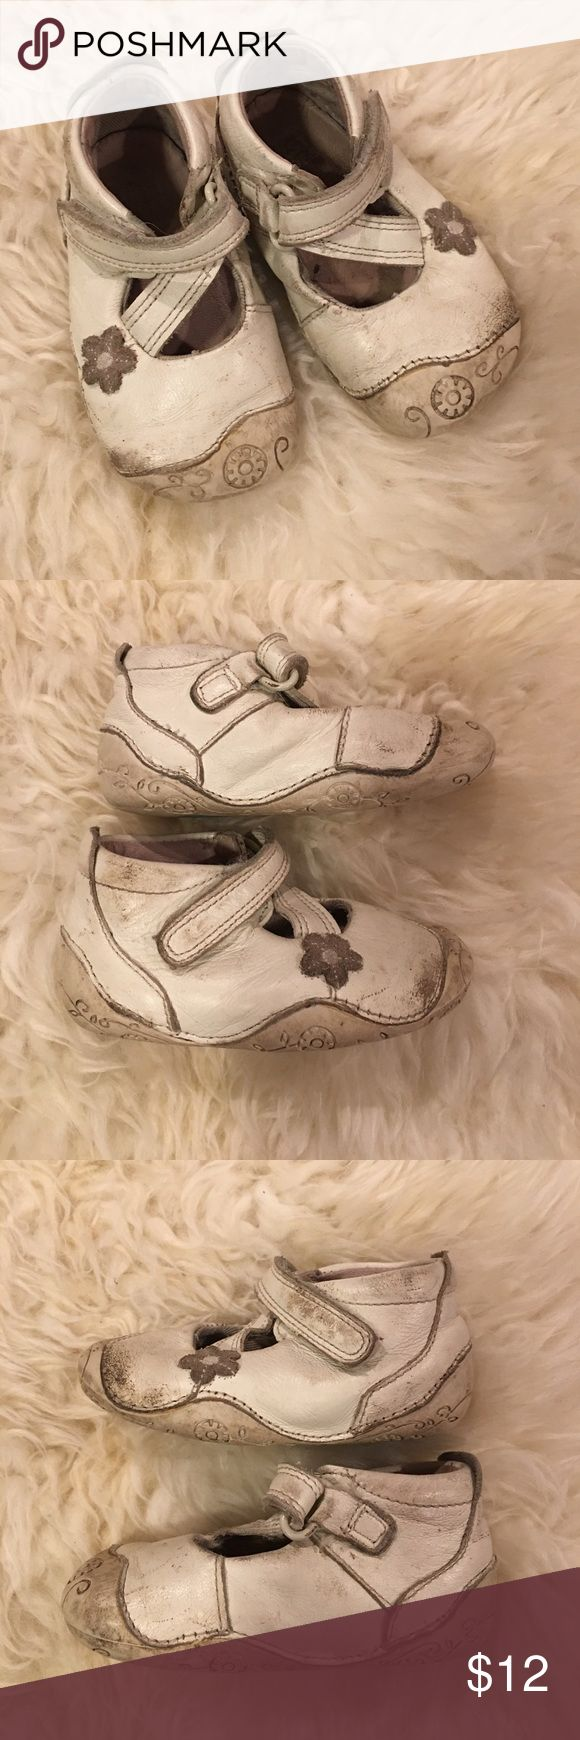 Clarks white leather baby girl shoes 3.5 Clarks first shoes in white leather with floral accents. Super flexible rubber sole and toe, perfect for crawlers and beginning walkers! These were my daughter's favorite pair. The leather has some wear and dirty parts. White shoe polish could probably make them look cleaned up, but structurally they're in great condition for more play! Size 3.5 m Clarks Shoes Baby & Walker